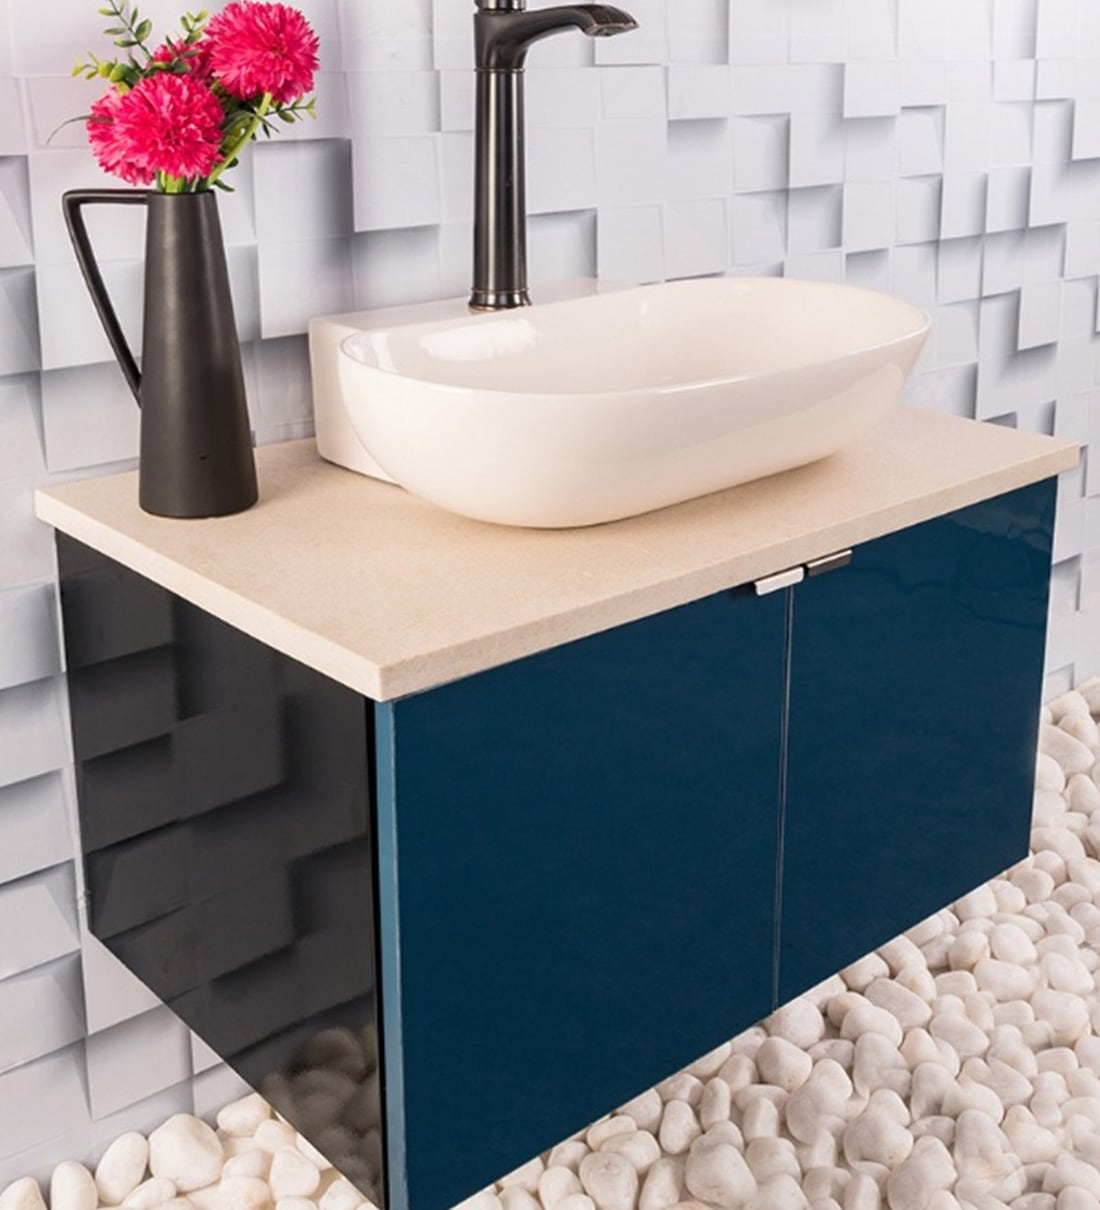 Buy Stainless Steel Bathroom Vanity In Blue With Counter Top Wash Basin By Tusker Online Vanities Bath Discontinued Pepperfry Product